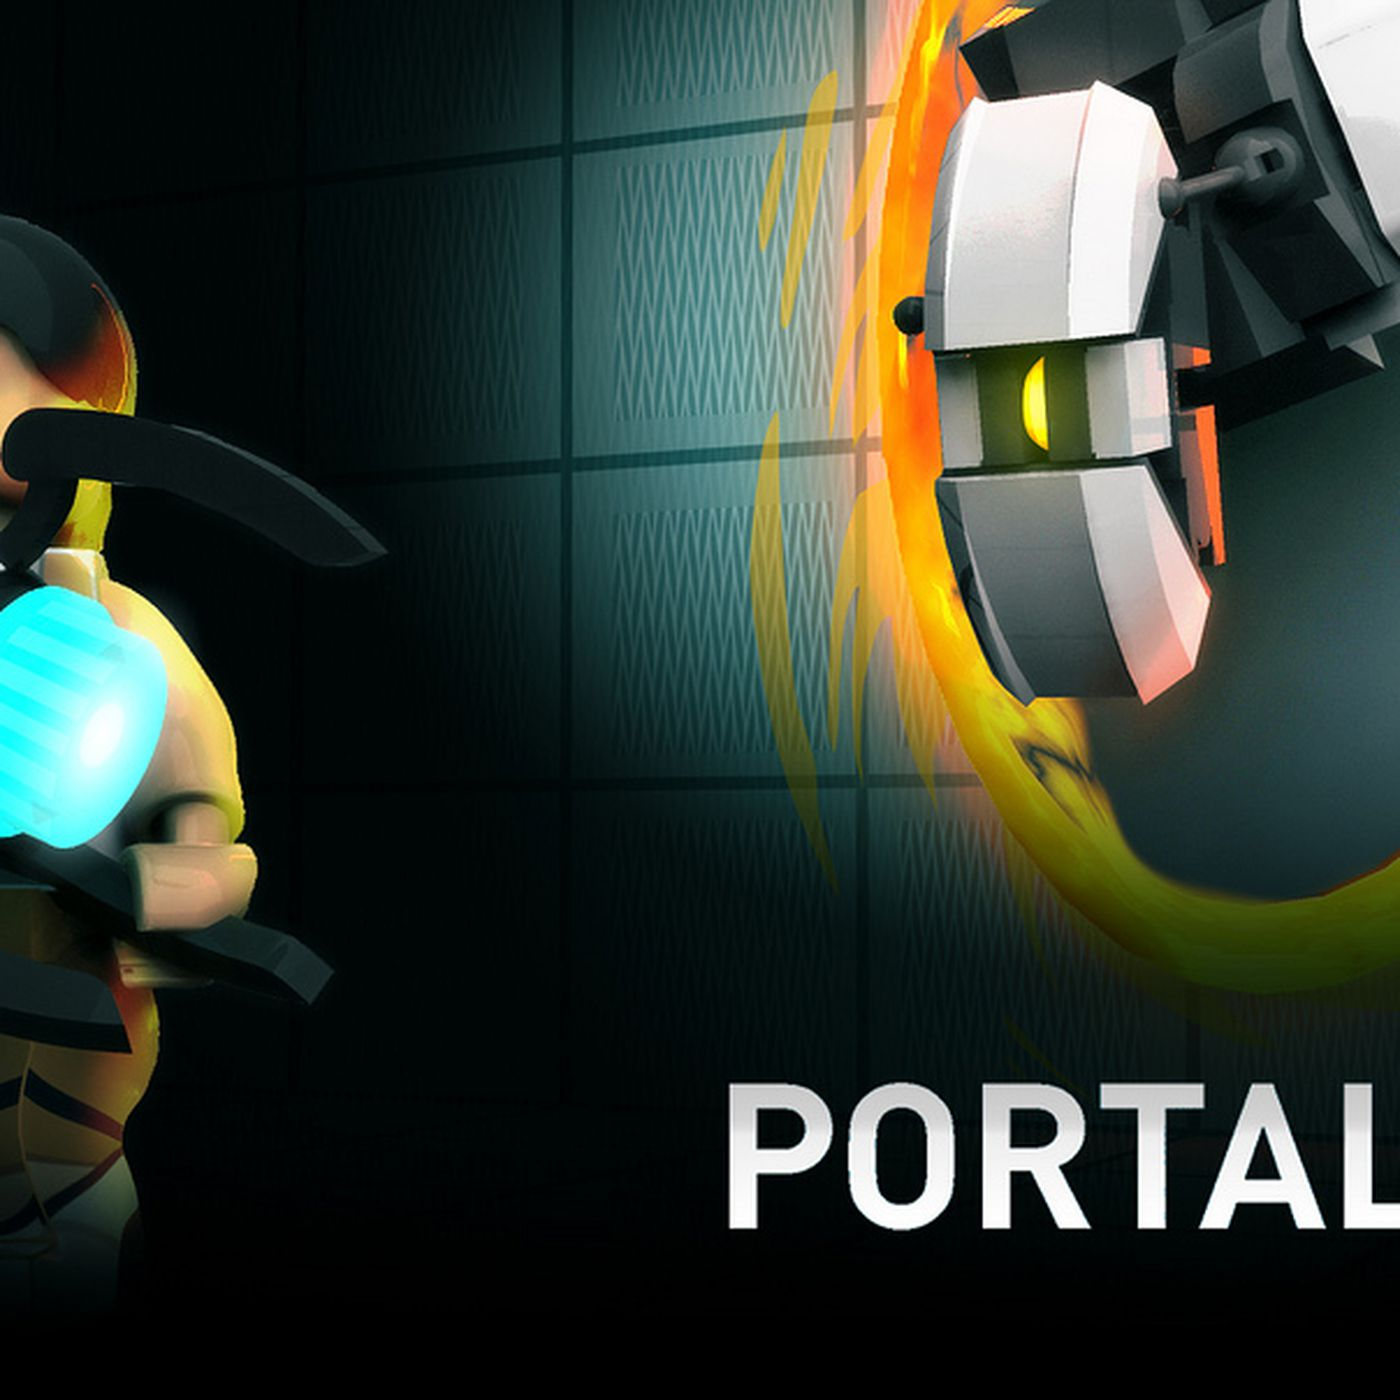 Portal Lego Concept Could Become An Official Product The